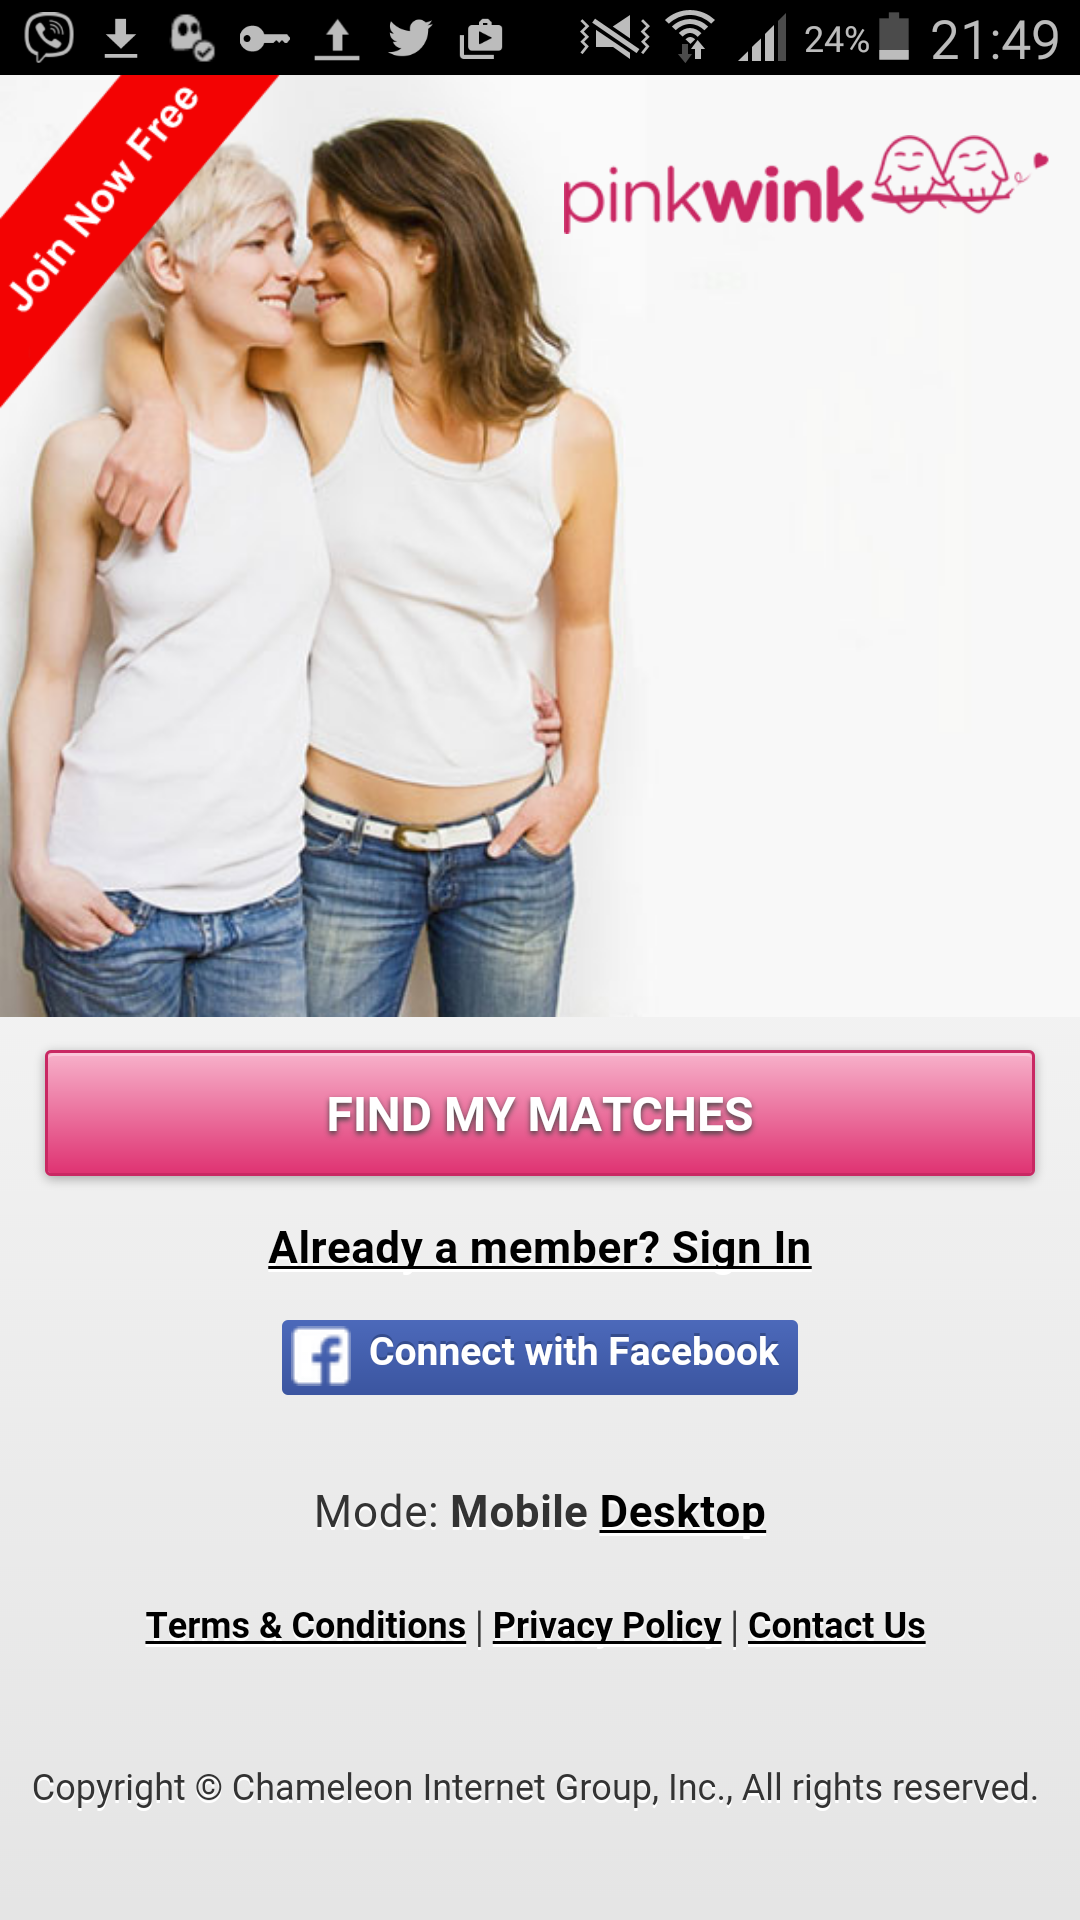 pittston lesbian dating site Cardinal / ottawa south koa is located in cardinal, ontario and offers great camping sites click here to find out more information or to book a reservation.